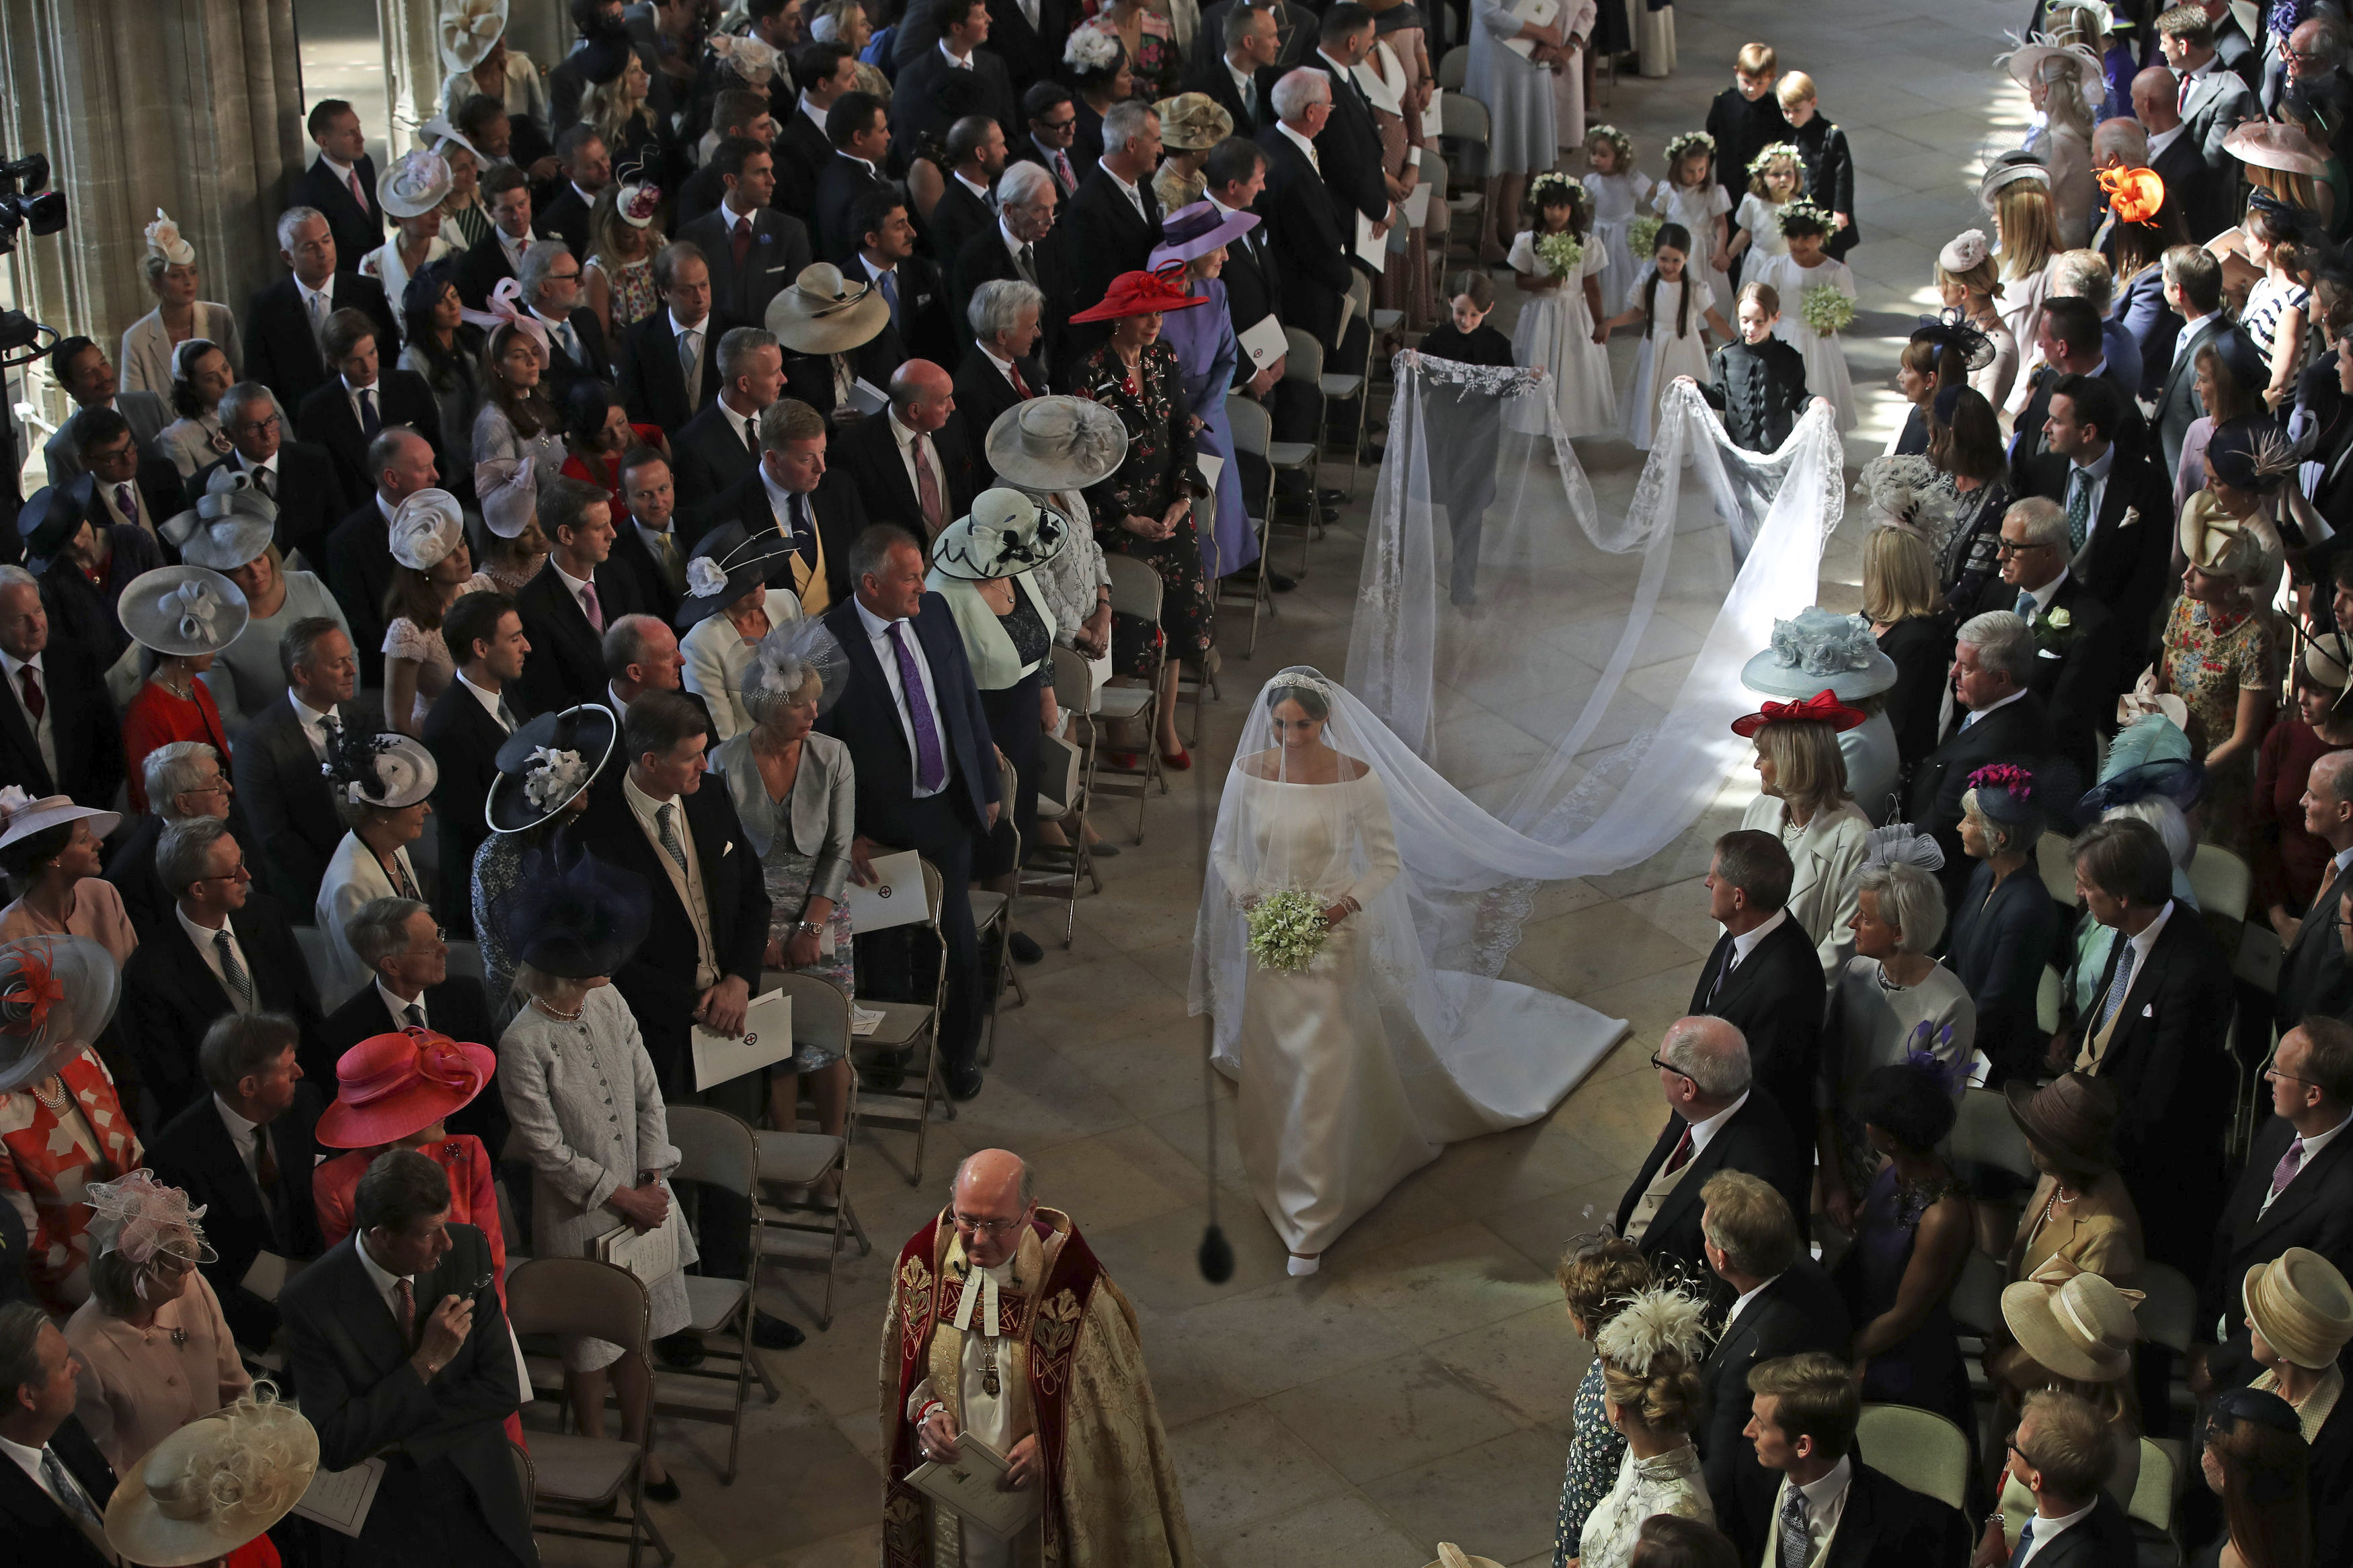 Meghan Markle, in Givenchy wedding dress, walks the majority of the aisle by herself.